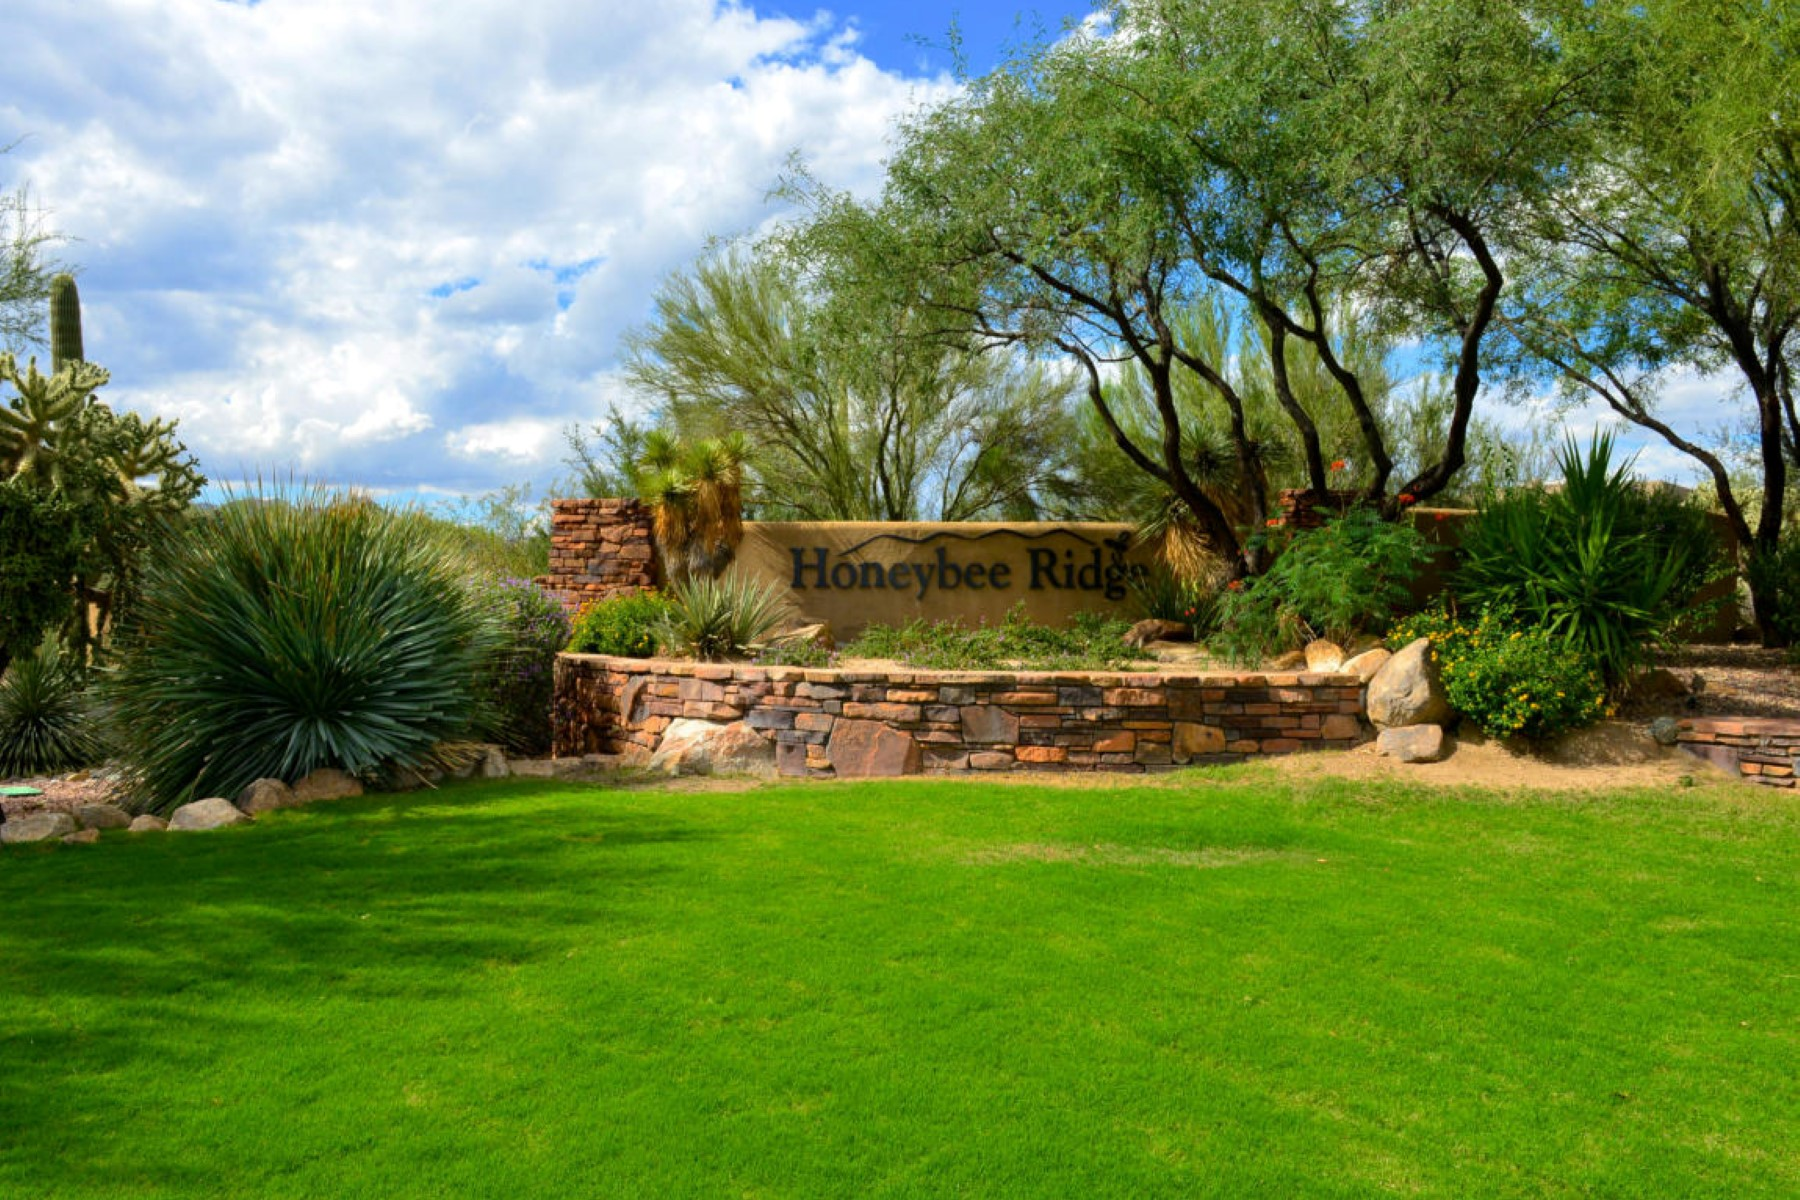 Terreno por un Venta en Elevated 1.02 acre gently slopped easy build homesite 14601 N Quiet Rain Drive 57 Oro Valley, Arizona, 85755 Estados Unidos